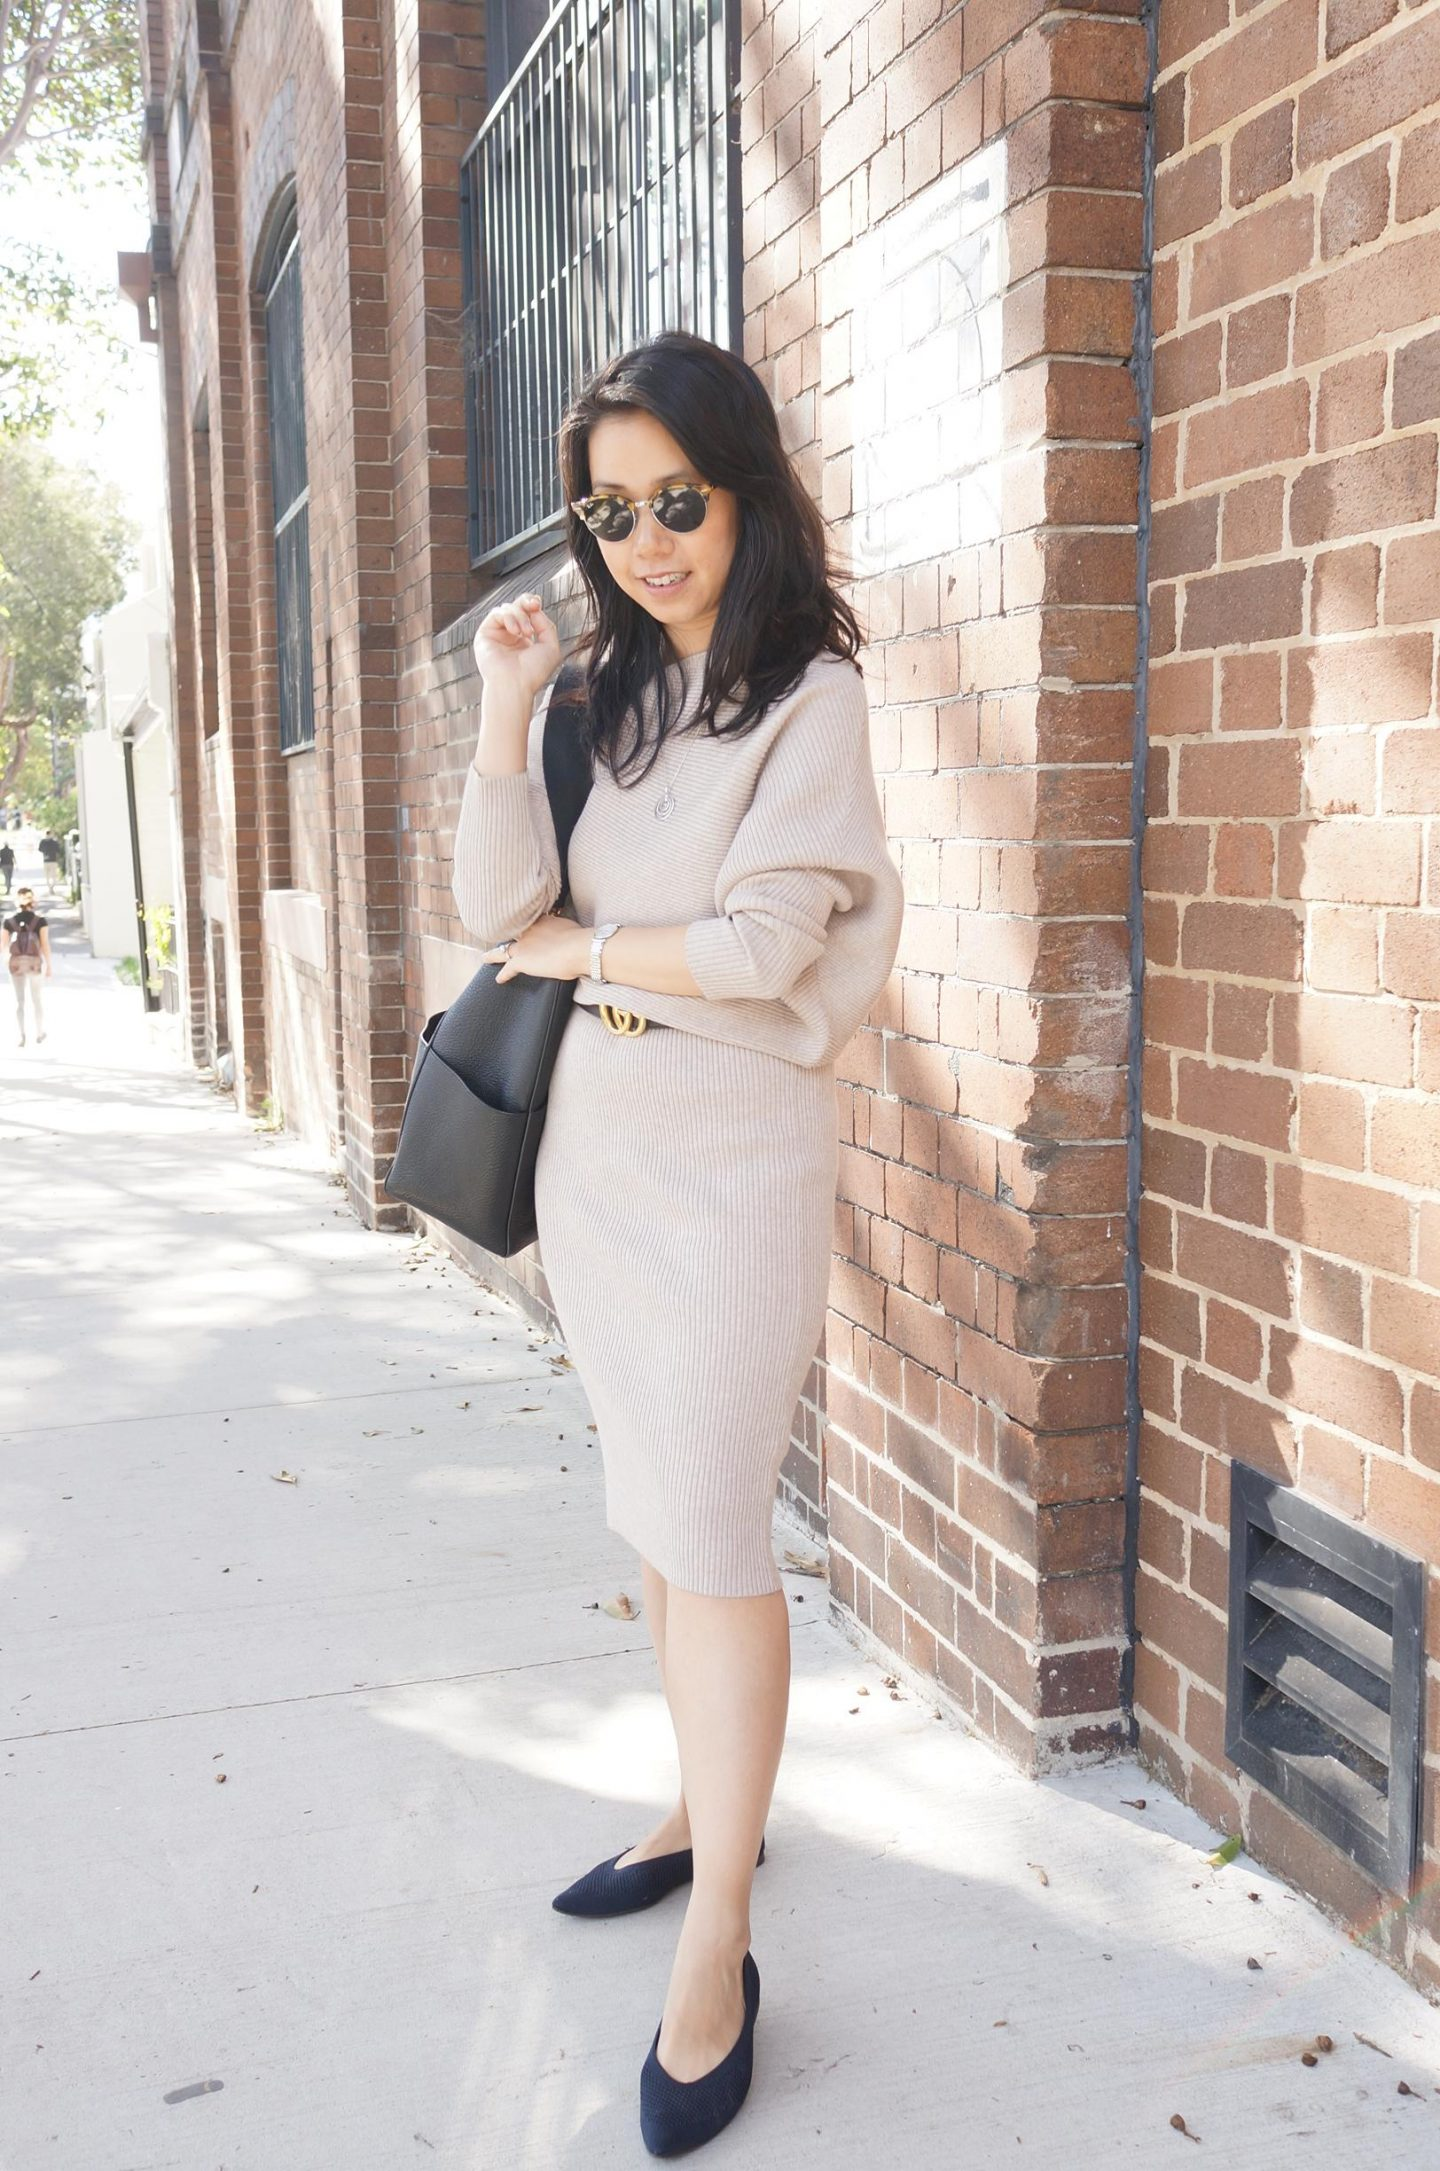 asian woman in reiss lara dress in blog post about shifting dress codes following covid lockdown restrictions lifting